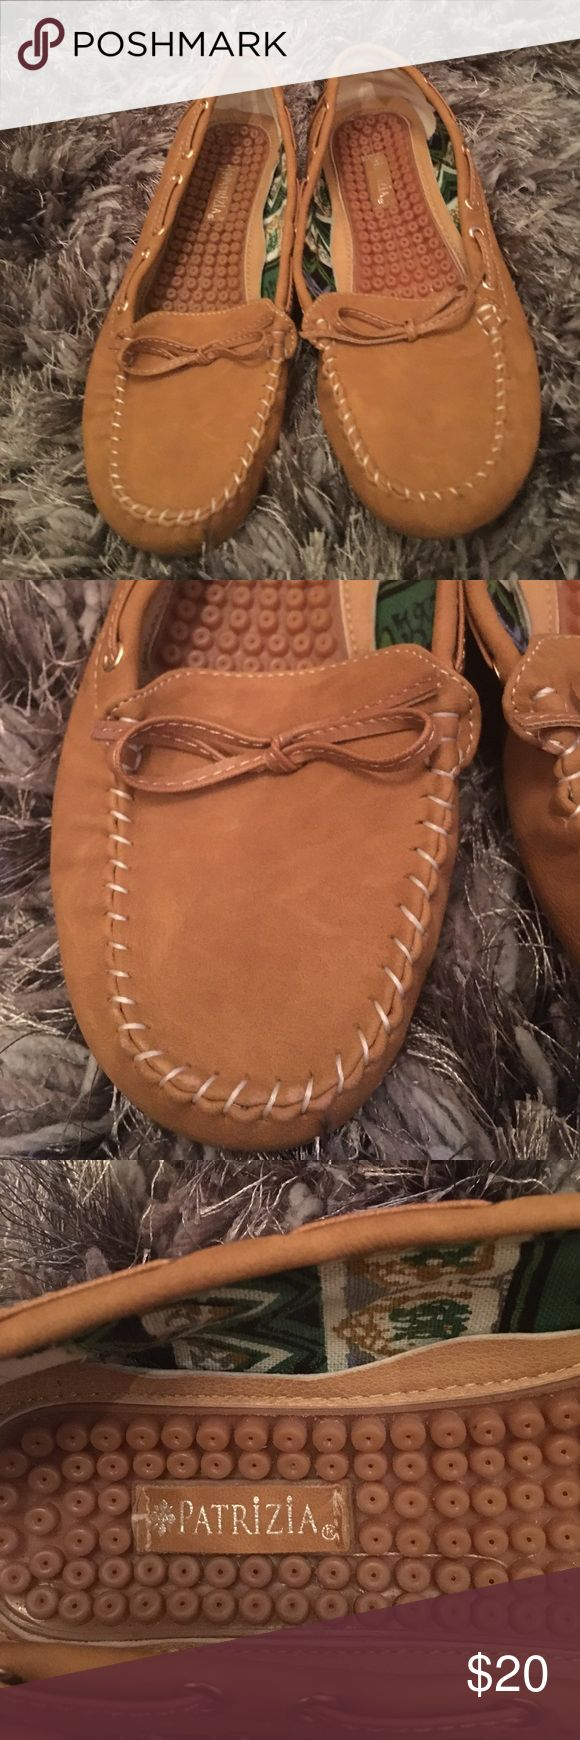 Women tan loafers size 7 Women tan loafers in size 37 by Patrizia! Well patented for extra cushion . Like new Patrizia Shoes Flats & Loafers